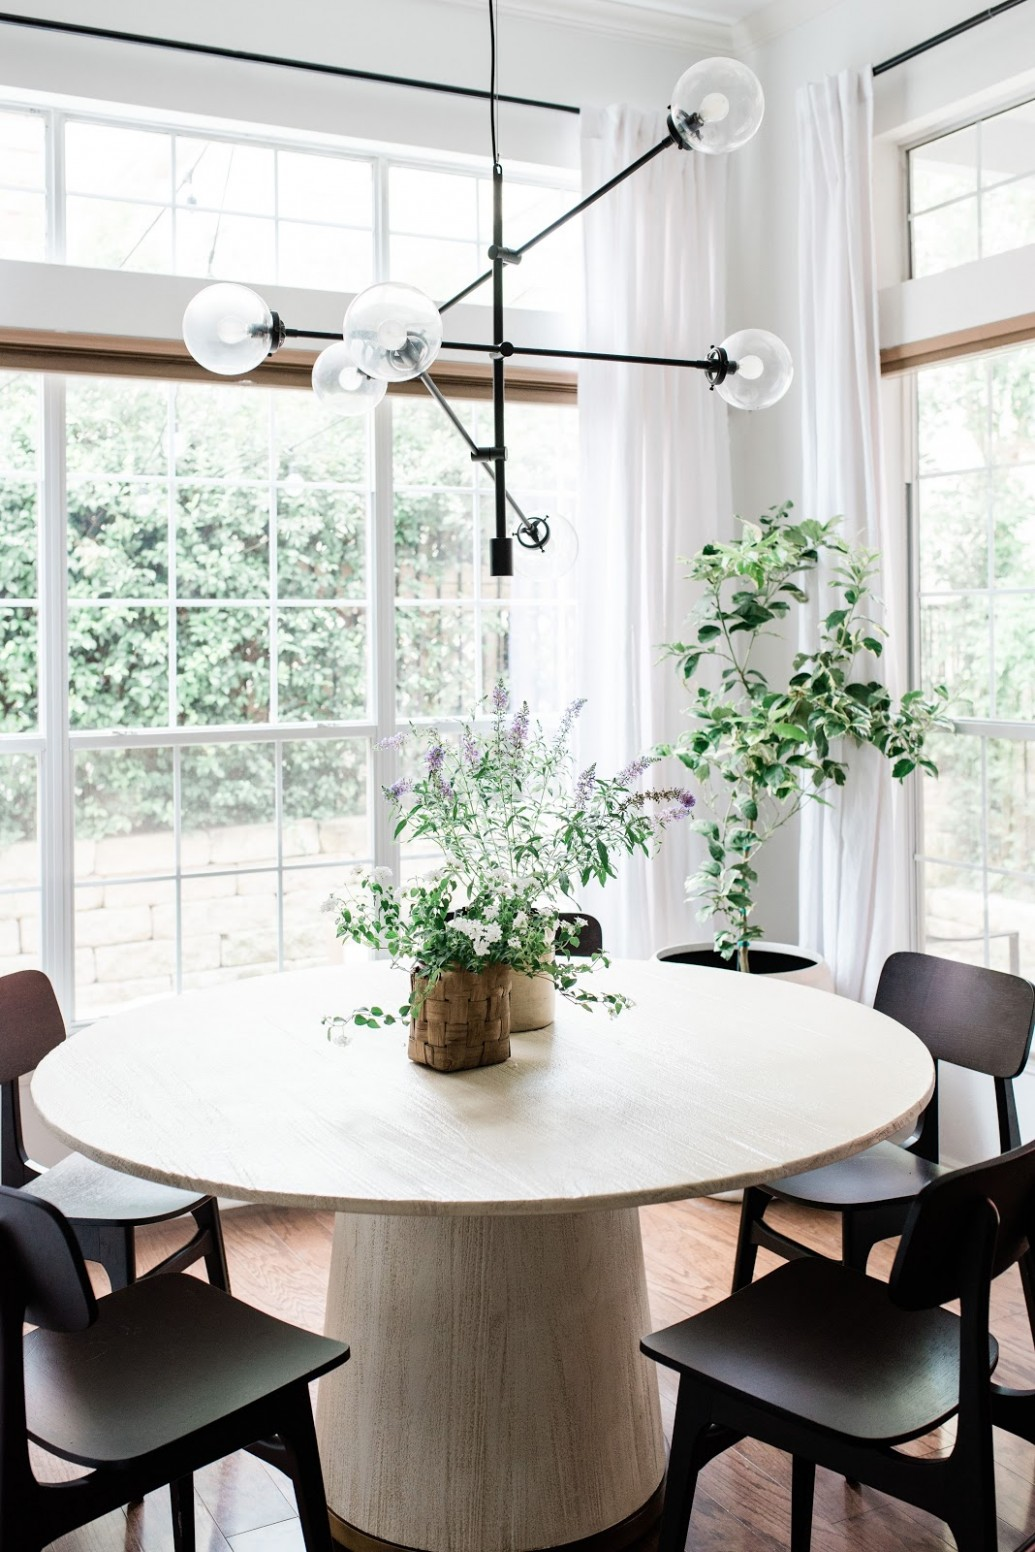 10 Small Dining Room Ideas to Make the Most of Your Space - Dining Room Ideas Round Table